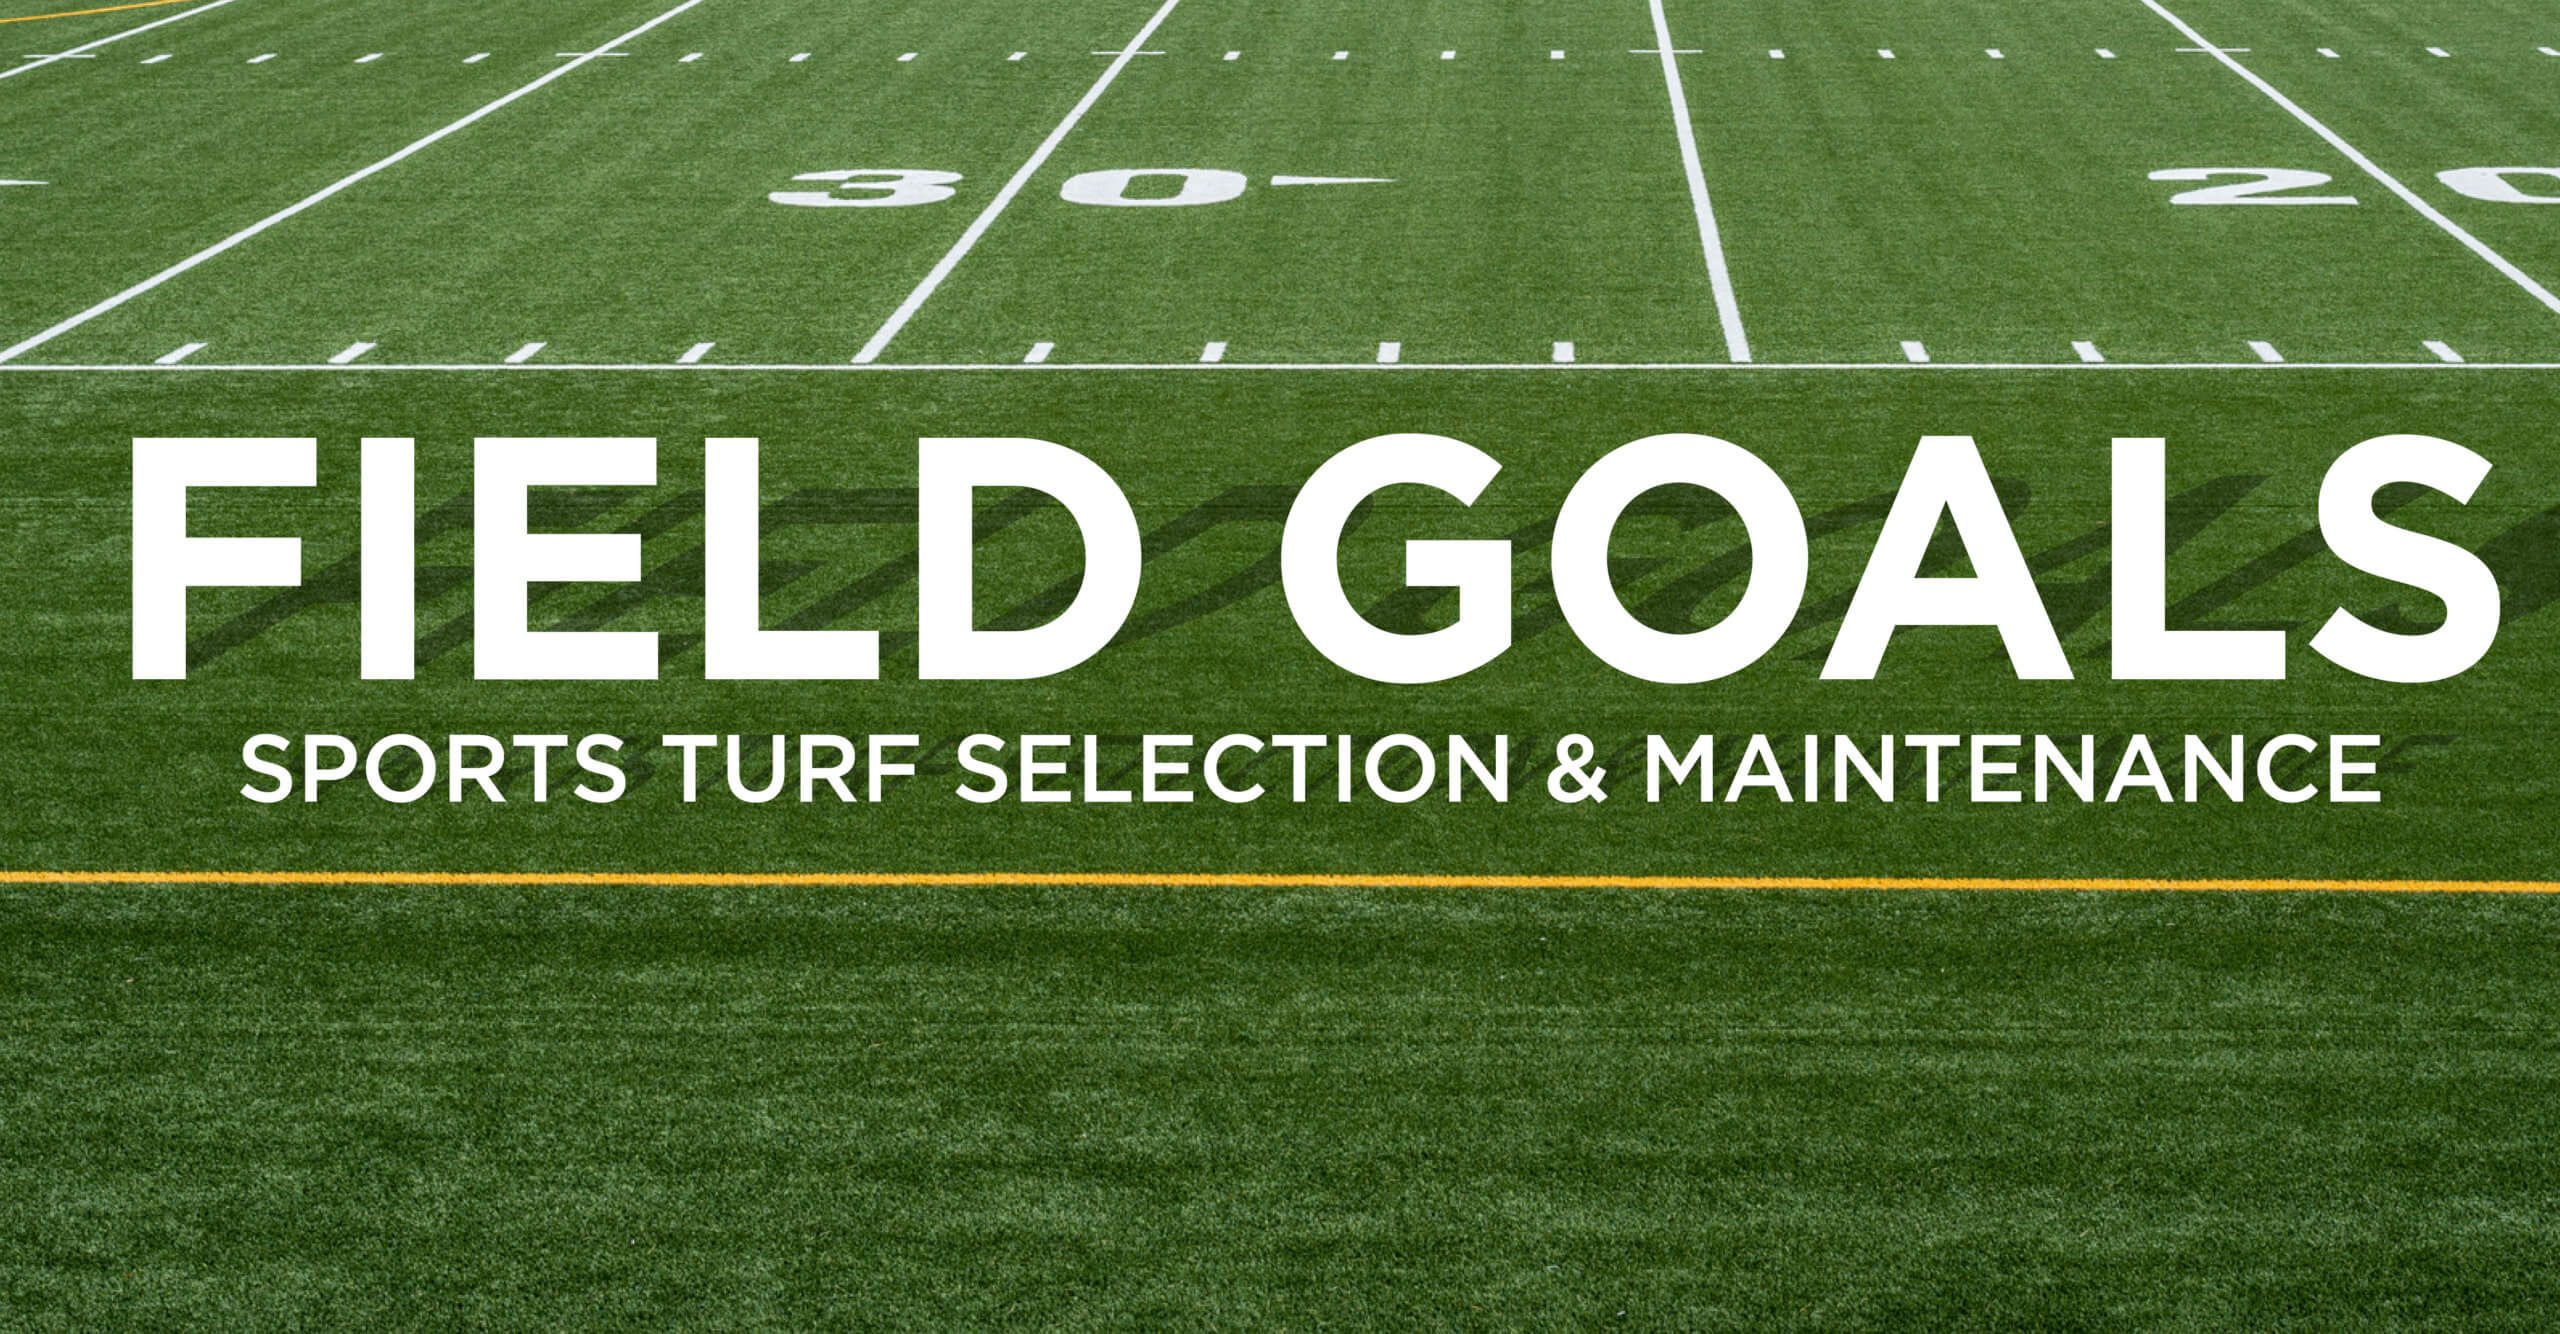 "Football field with the text ""Field Goals"" superimposed"